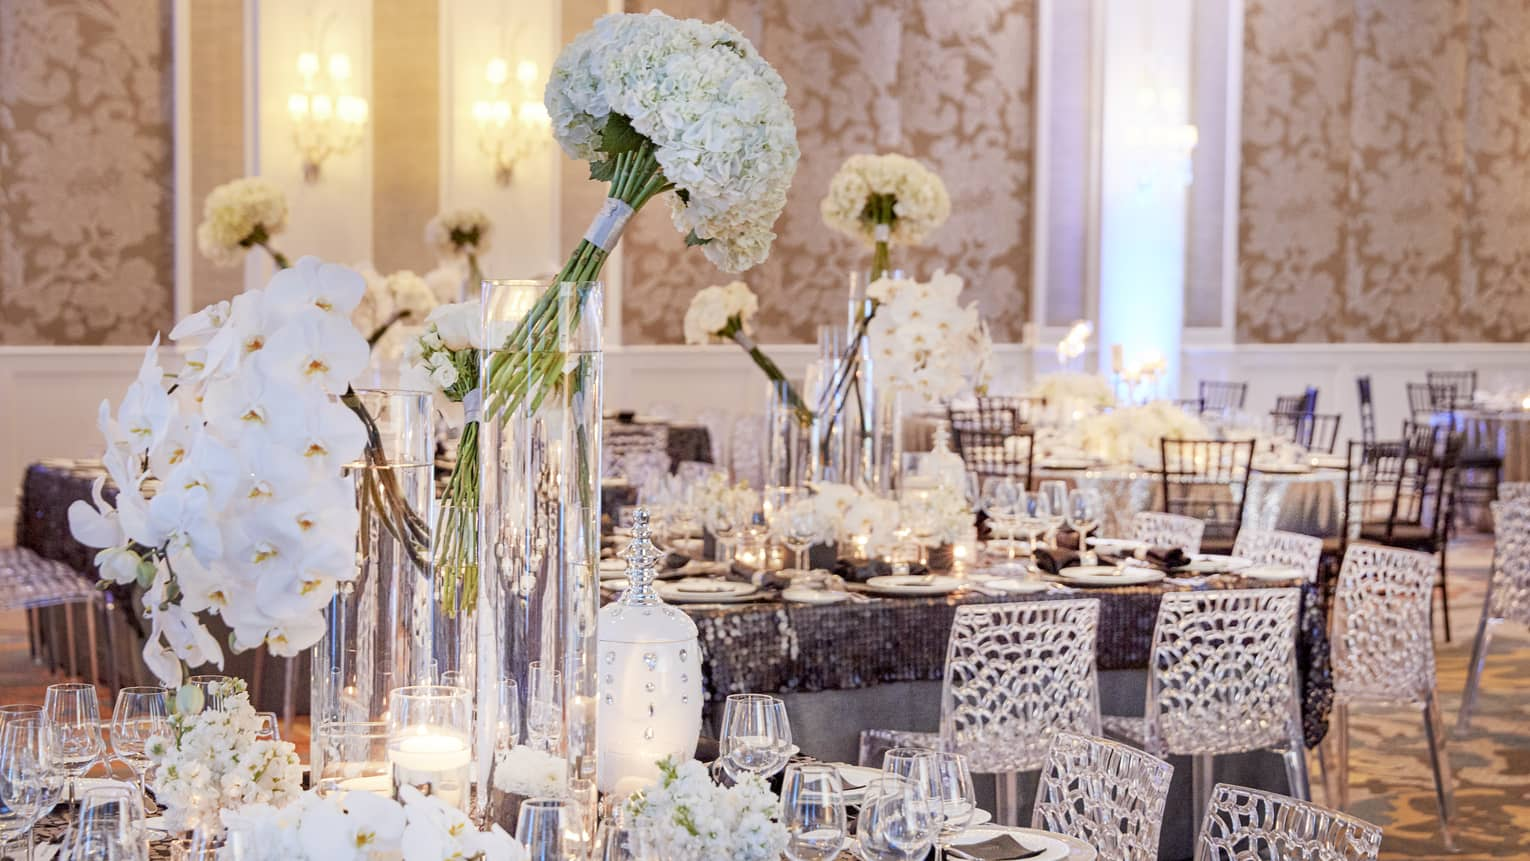 Elegant wedding reception tables set with white flowers, vases